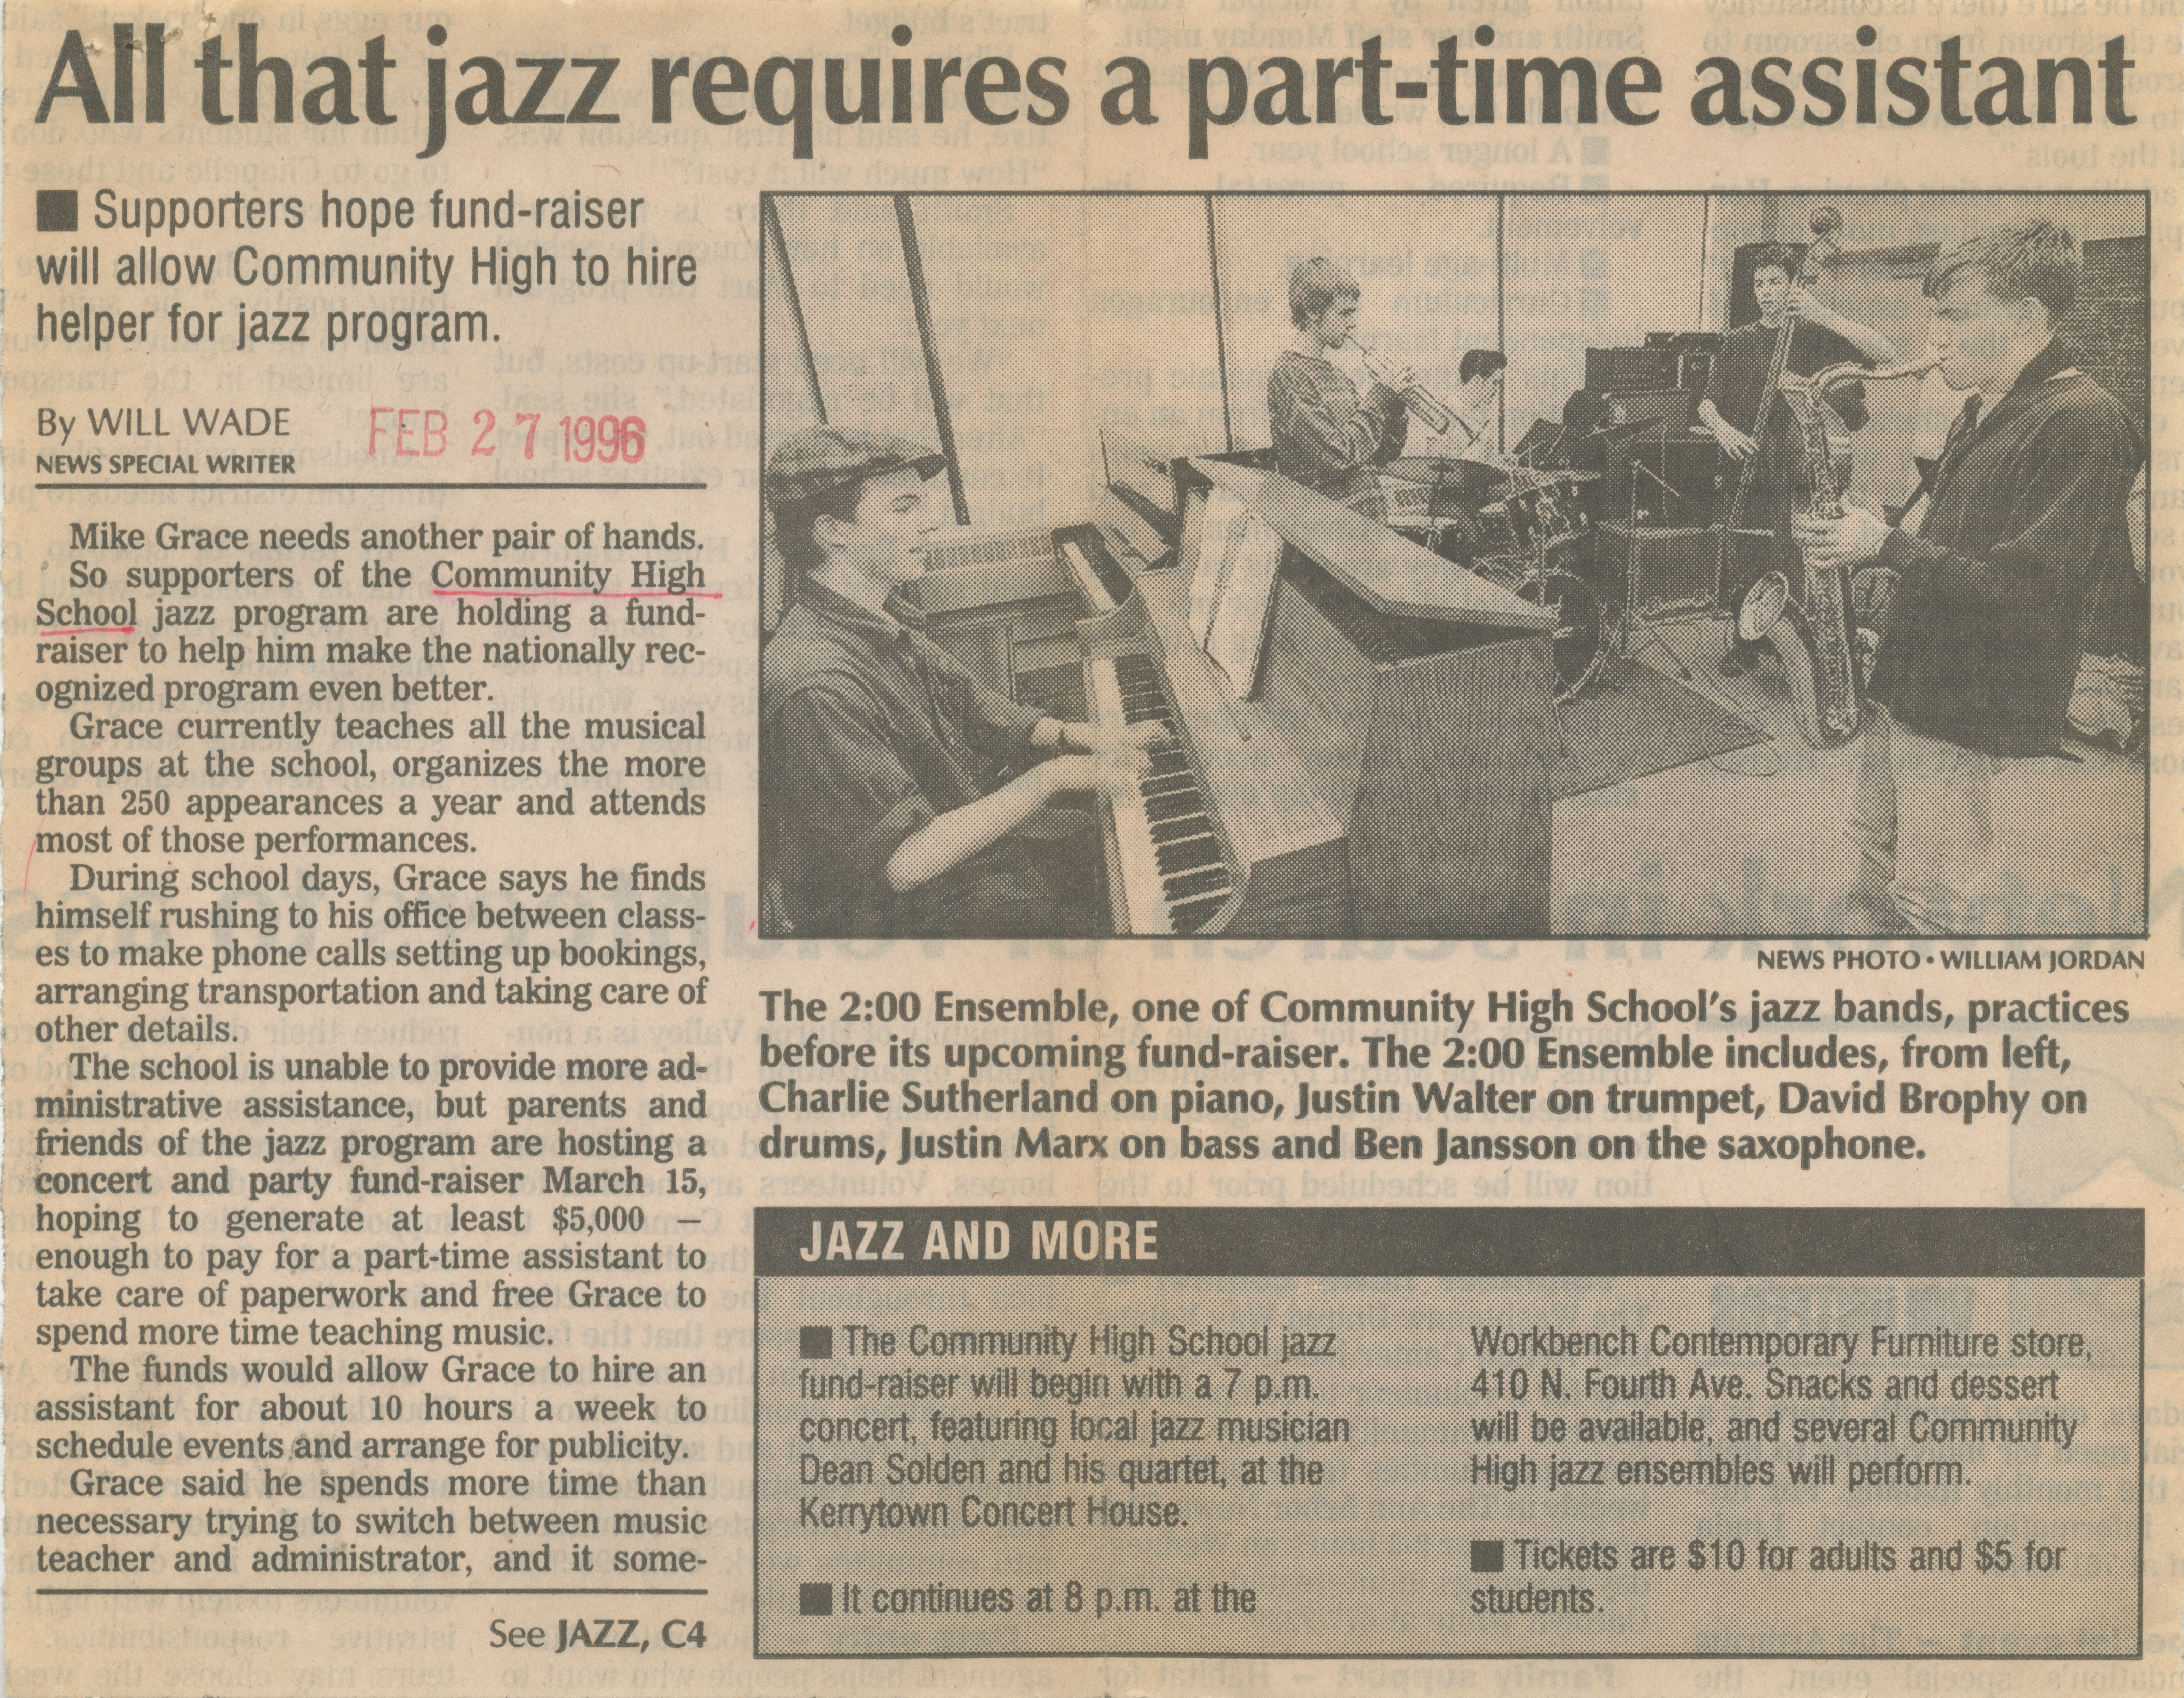 All that jazz requires a part-time assistant image